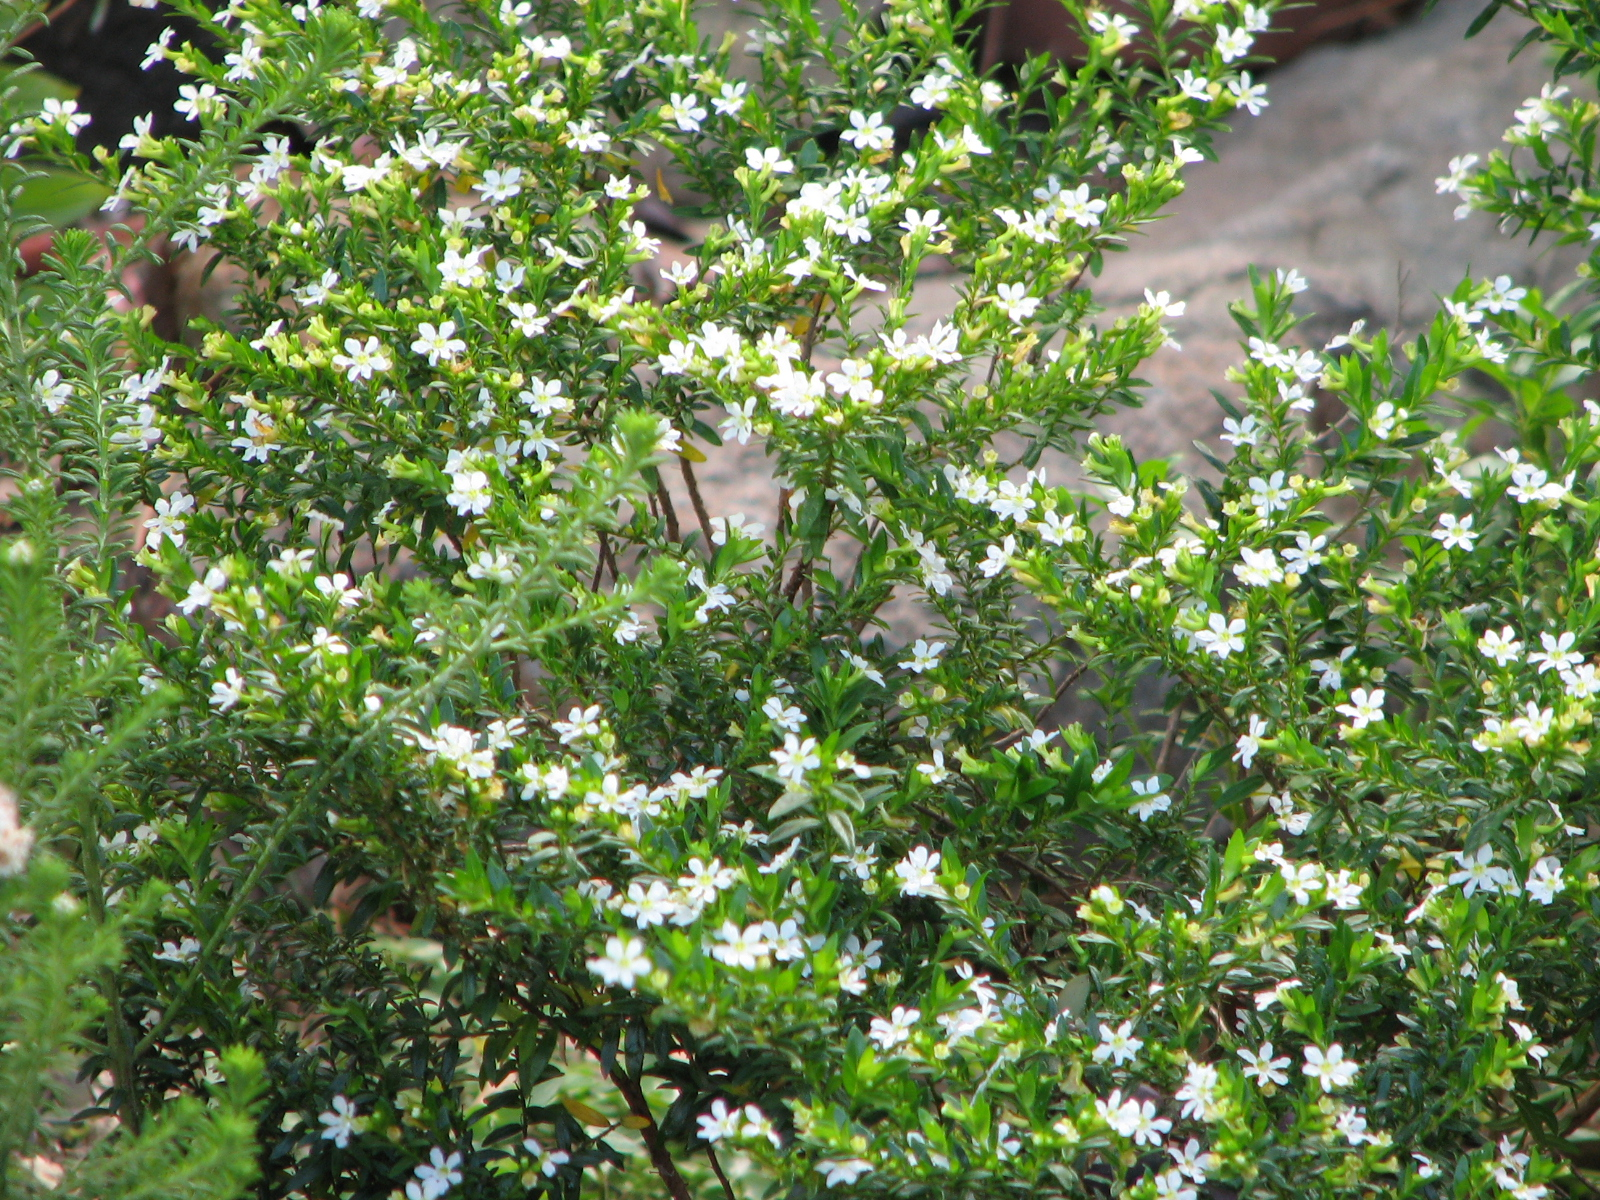 Bush bernies blog friday flower flaunt spring has sprung the tiny white flowers of the white cuphea hyssopifolia are on display all year round here and provide much needed colour at this dry time of year mightylinksfo